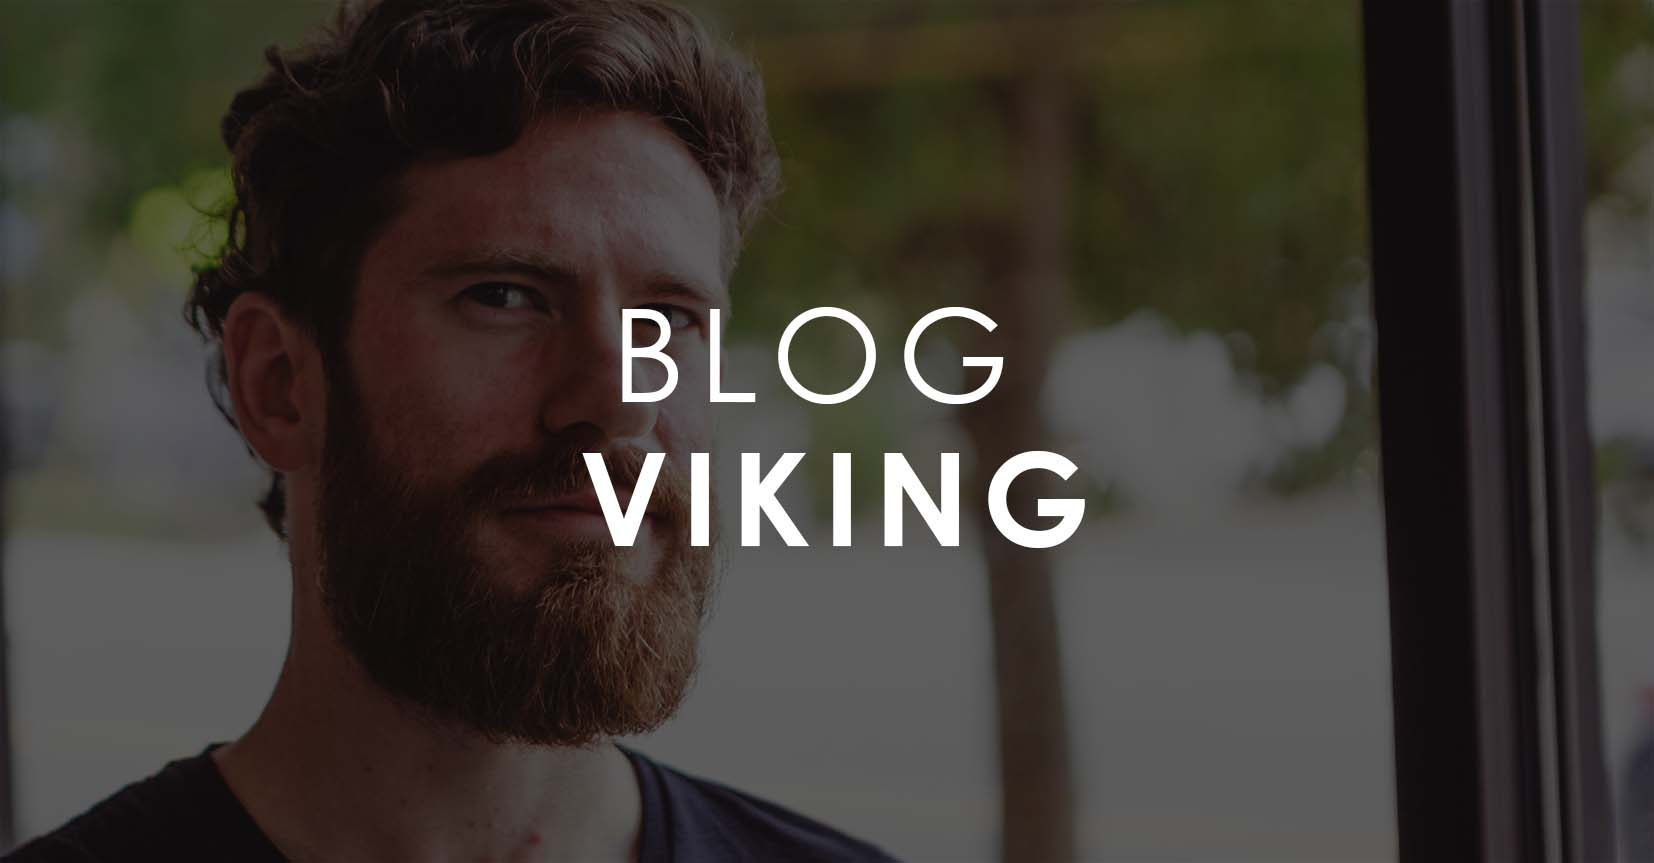 Blog Viking